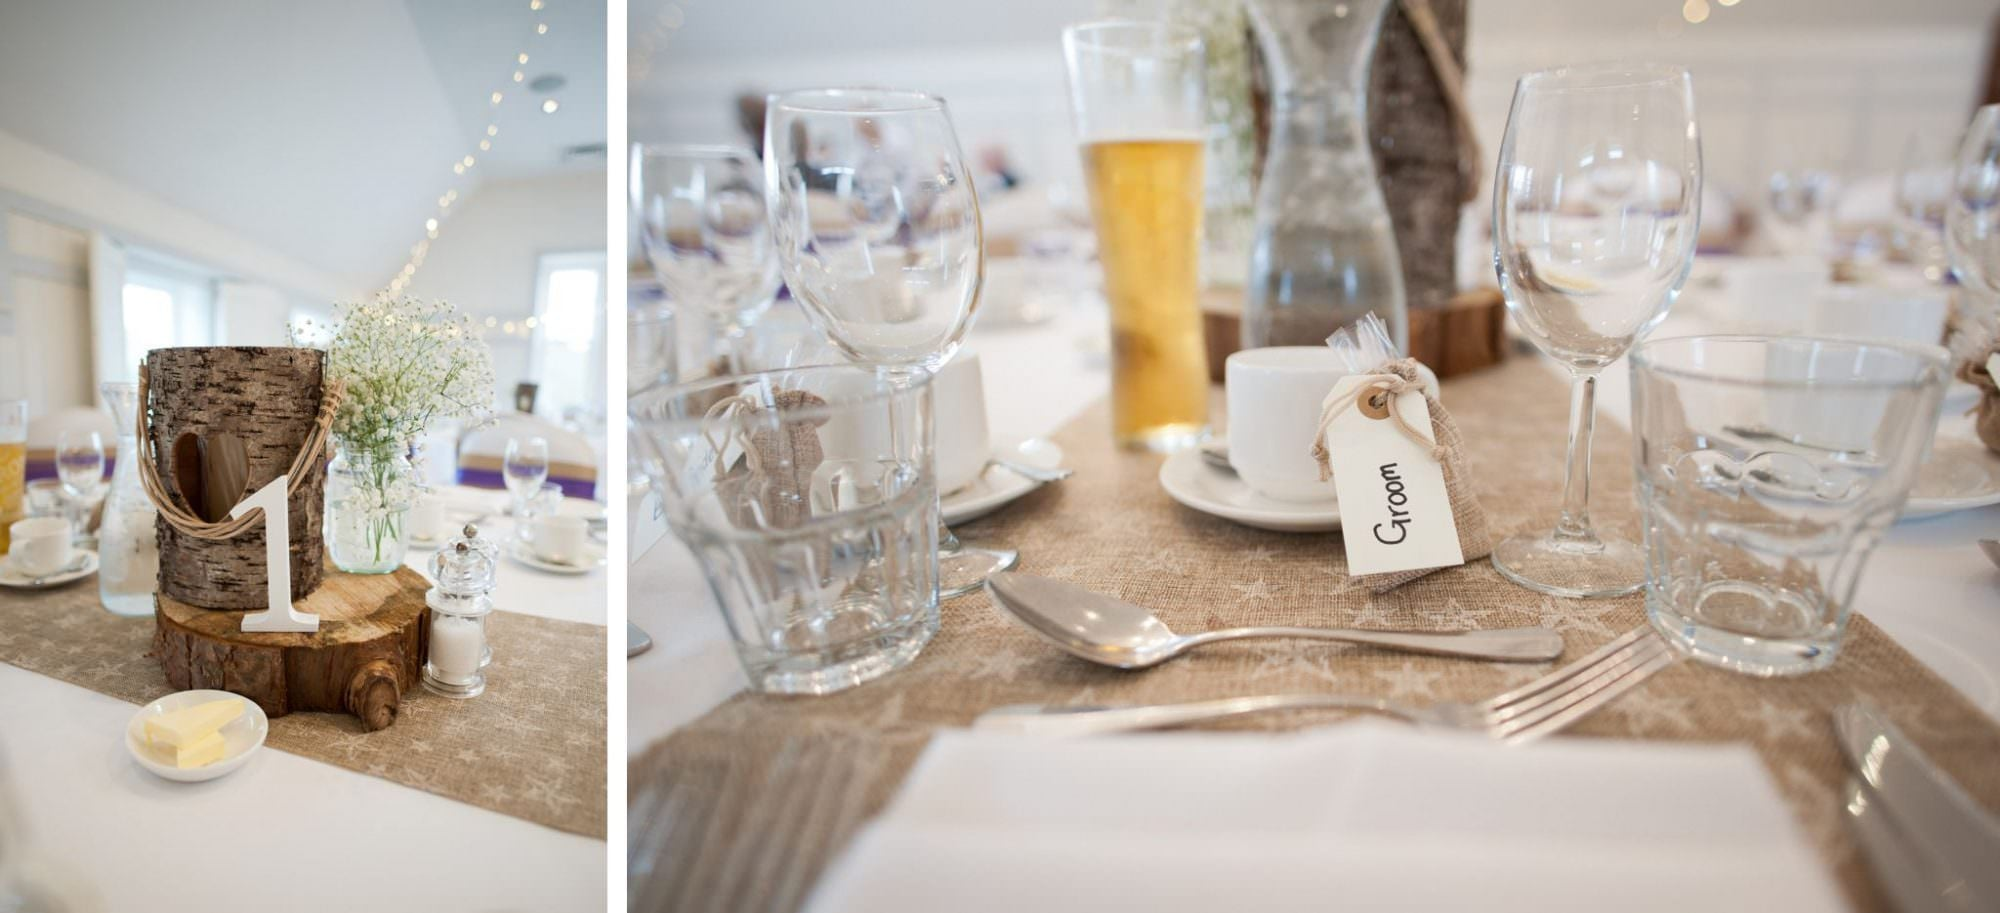 Table Decor at Kings Arms Hotel Wedding